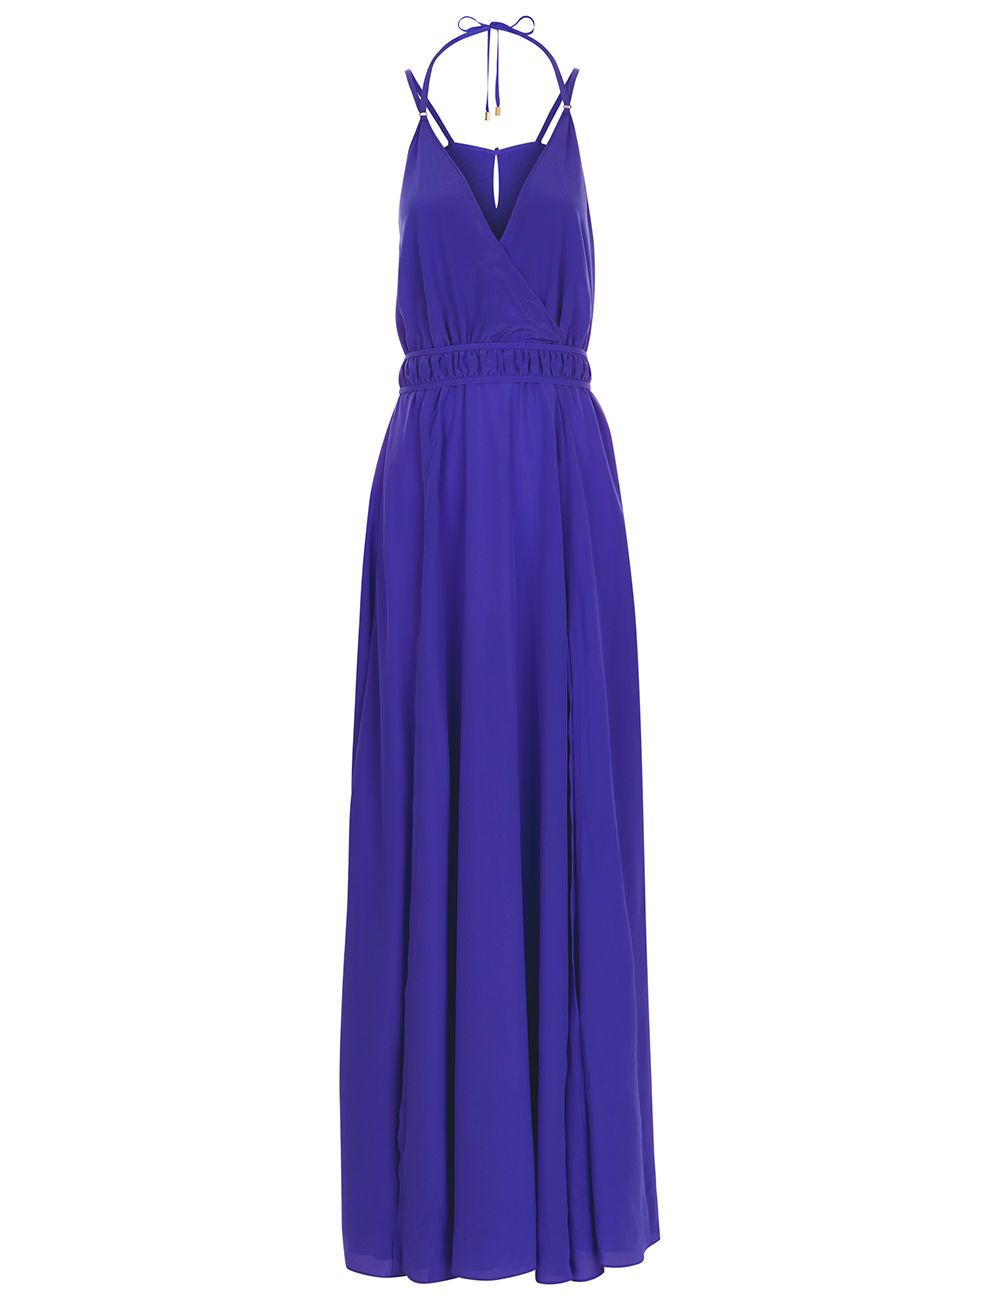 Whatus hot items on our hot list this week blue maxi dresses